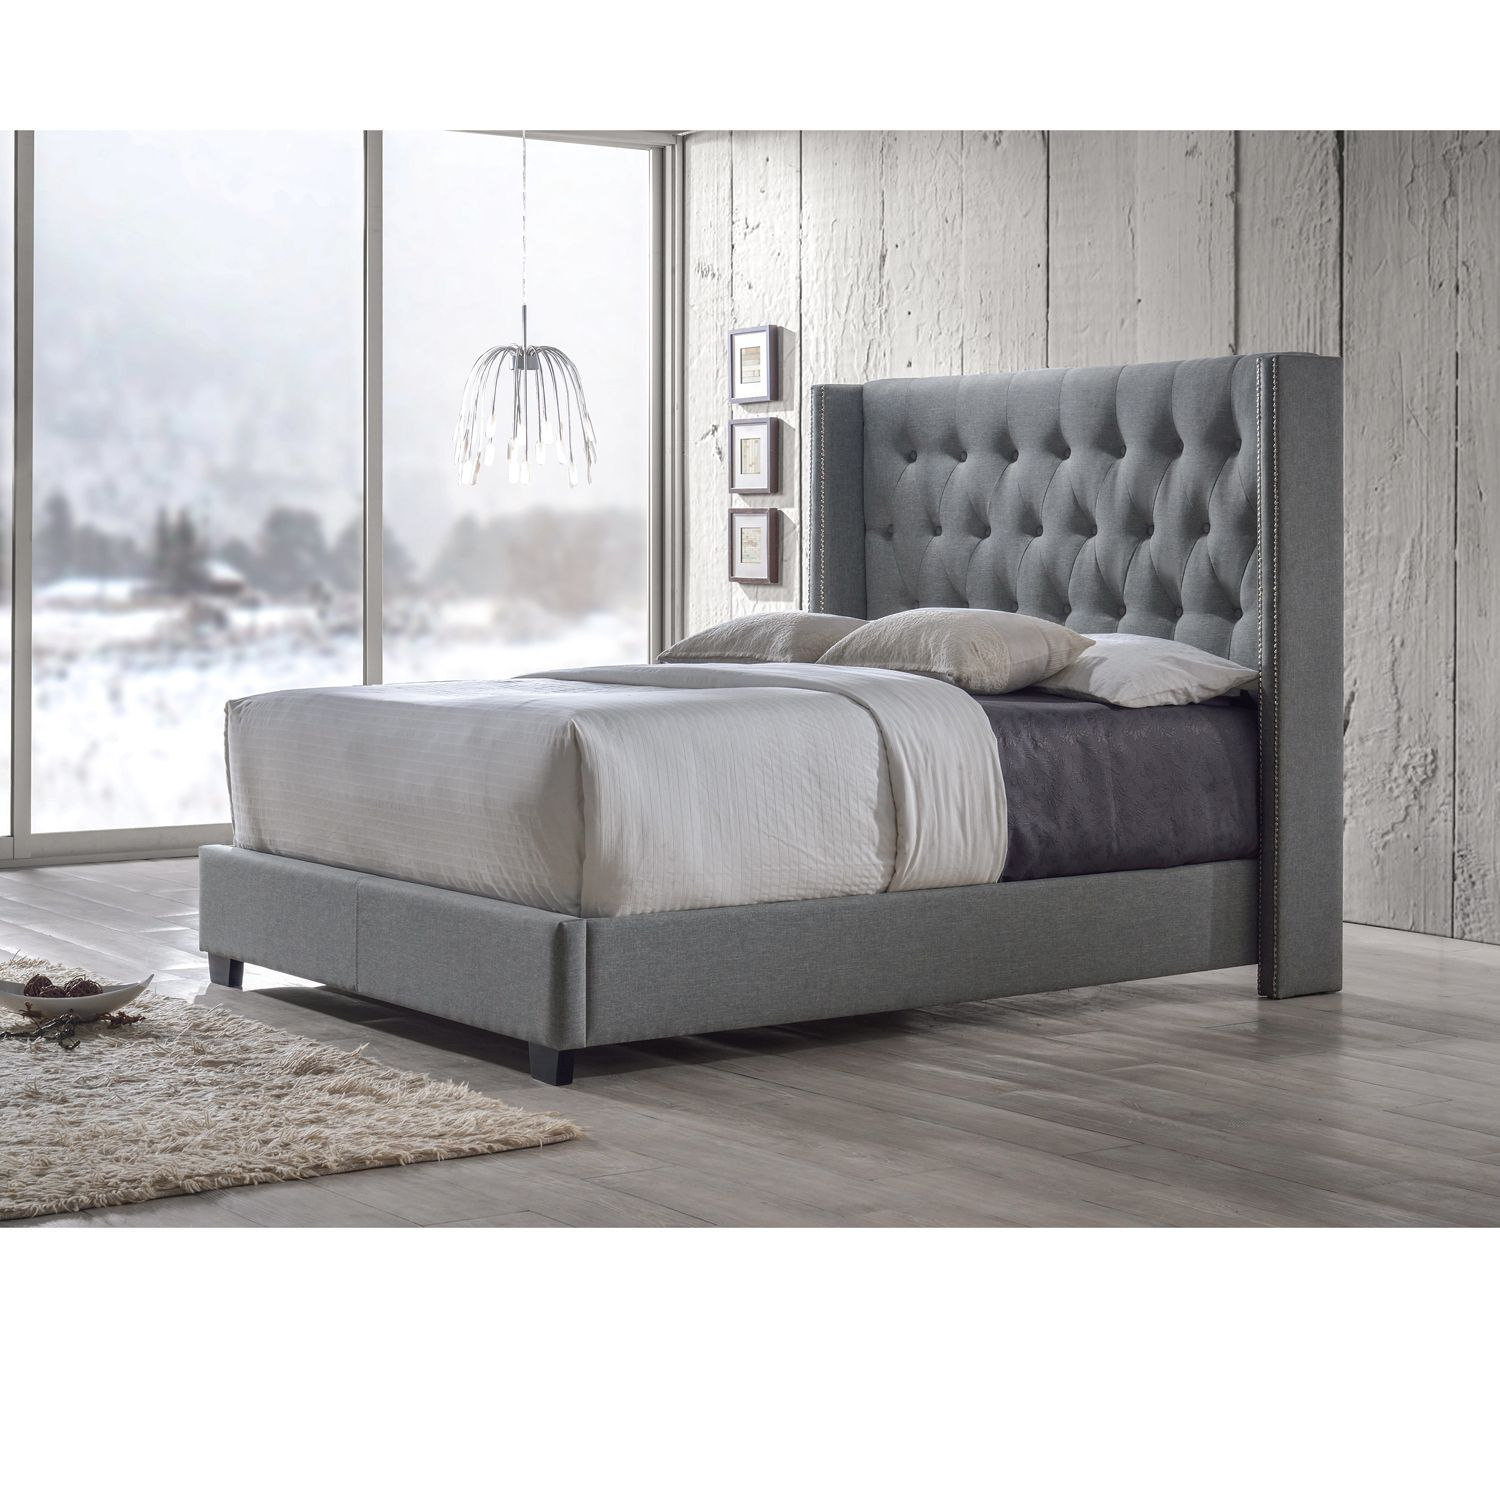 The King size button tufting bed frame features a slight arching headboard  adds a classic touch